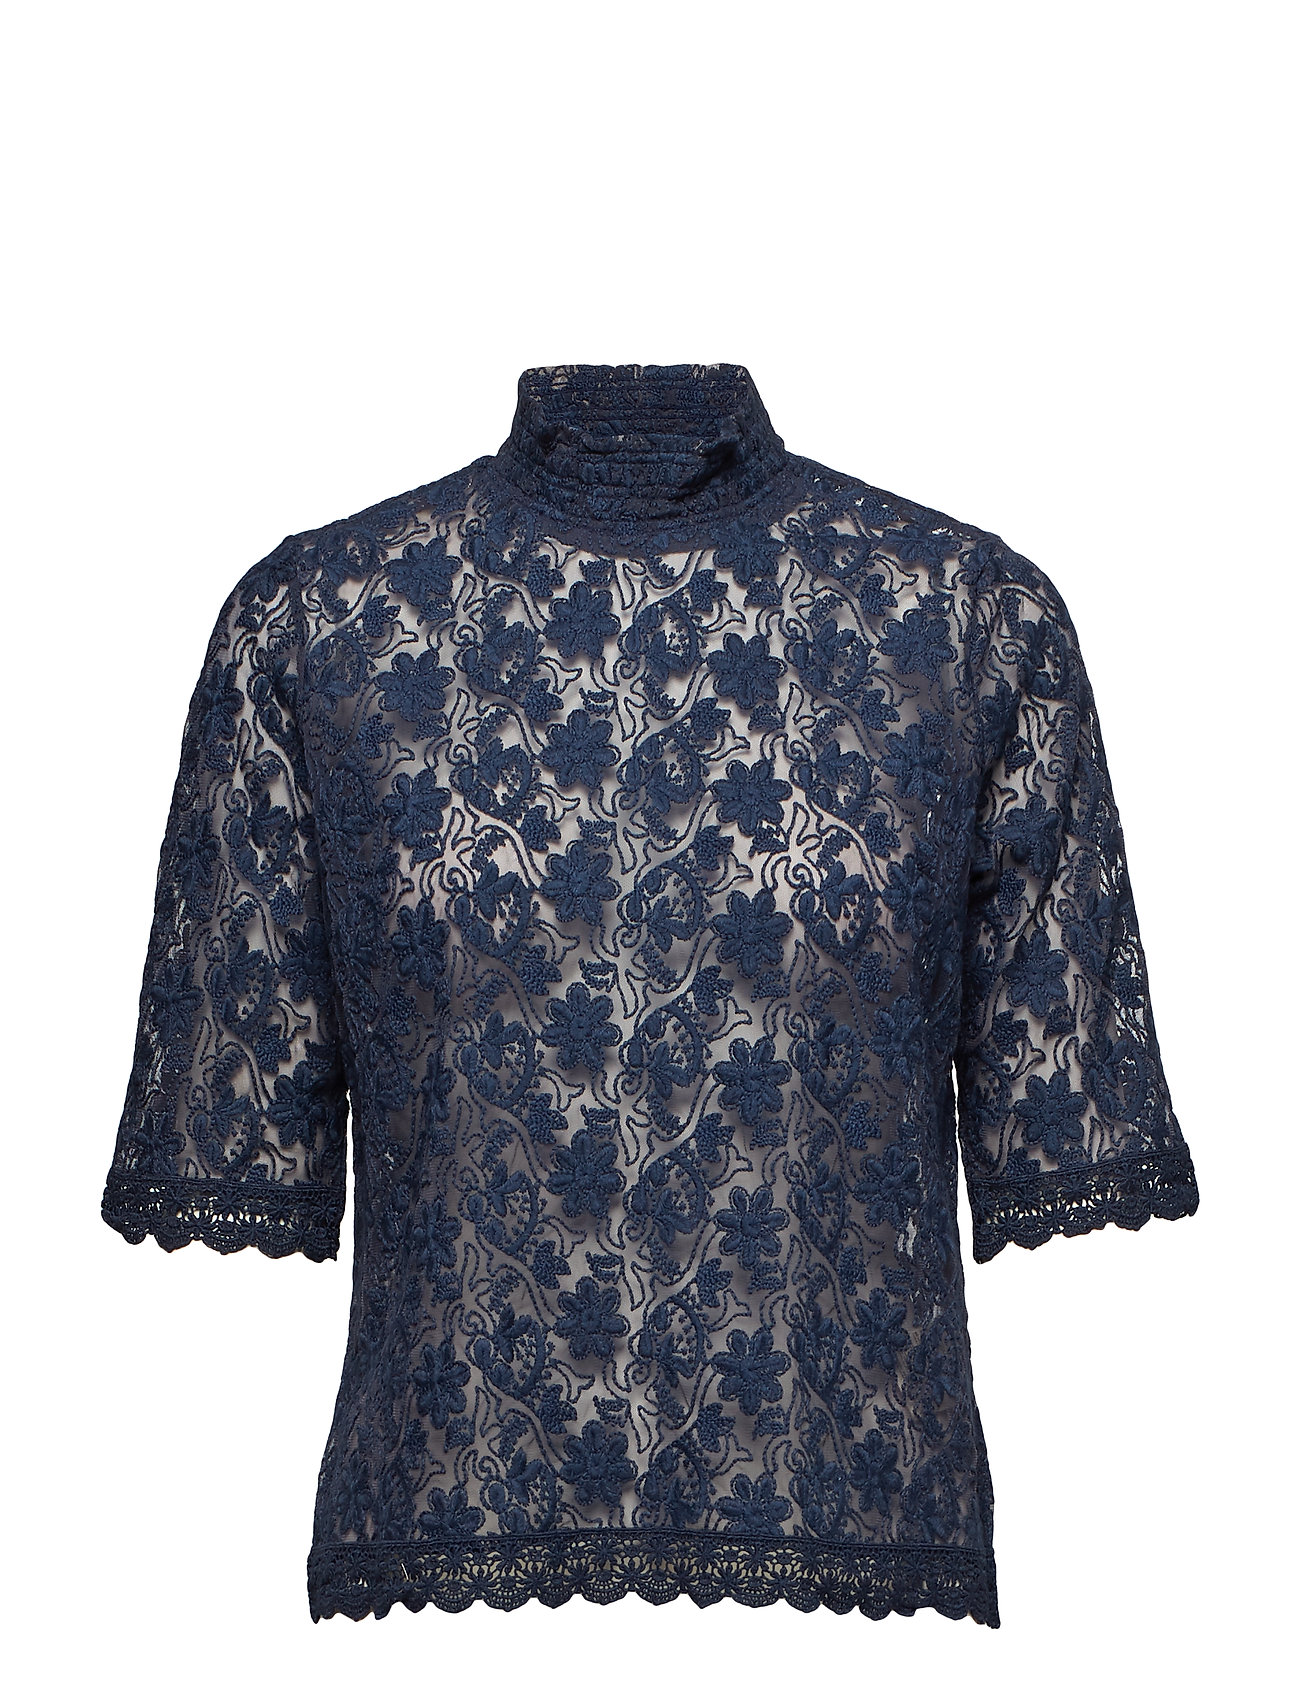 ODD MOLLY sway high blouse - FRENCH NAVY